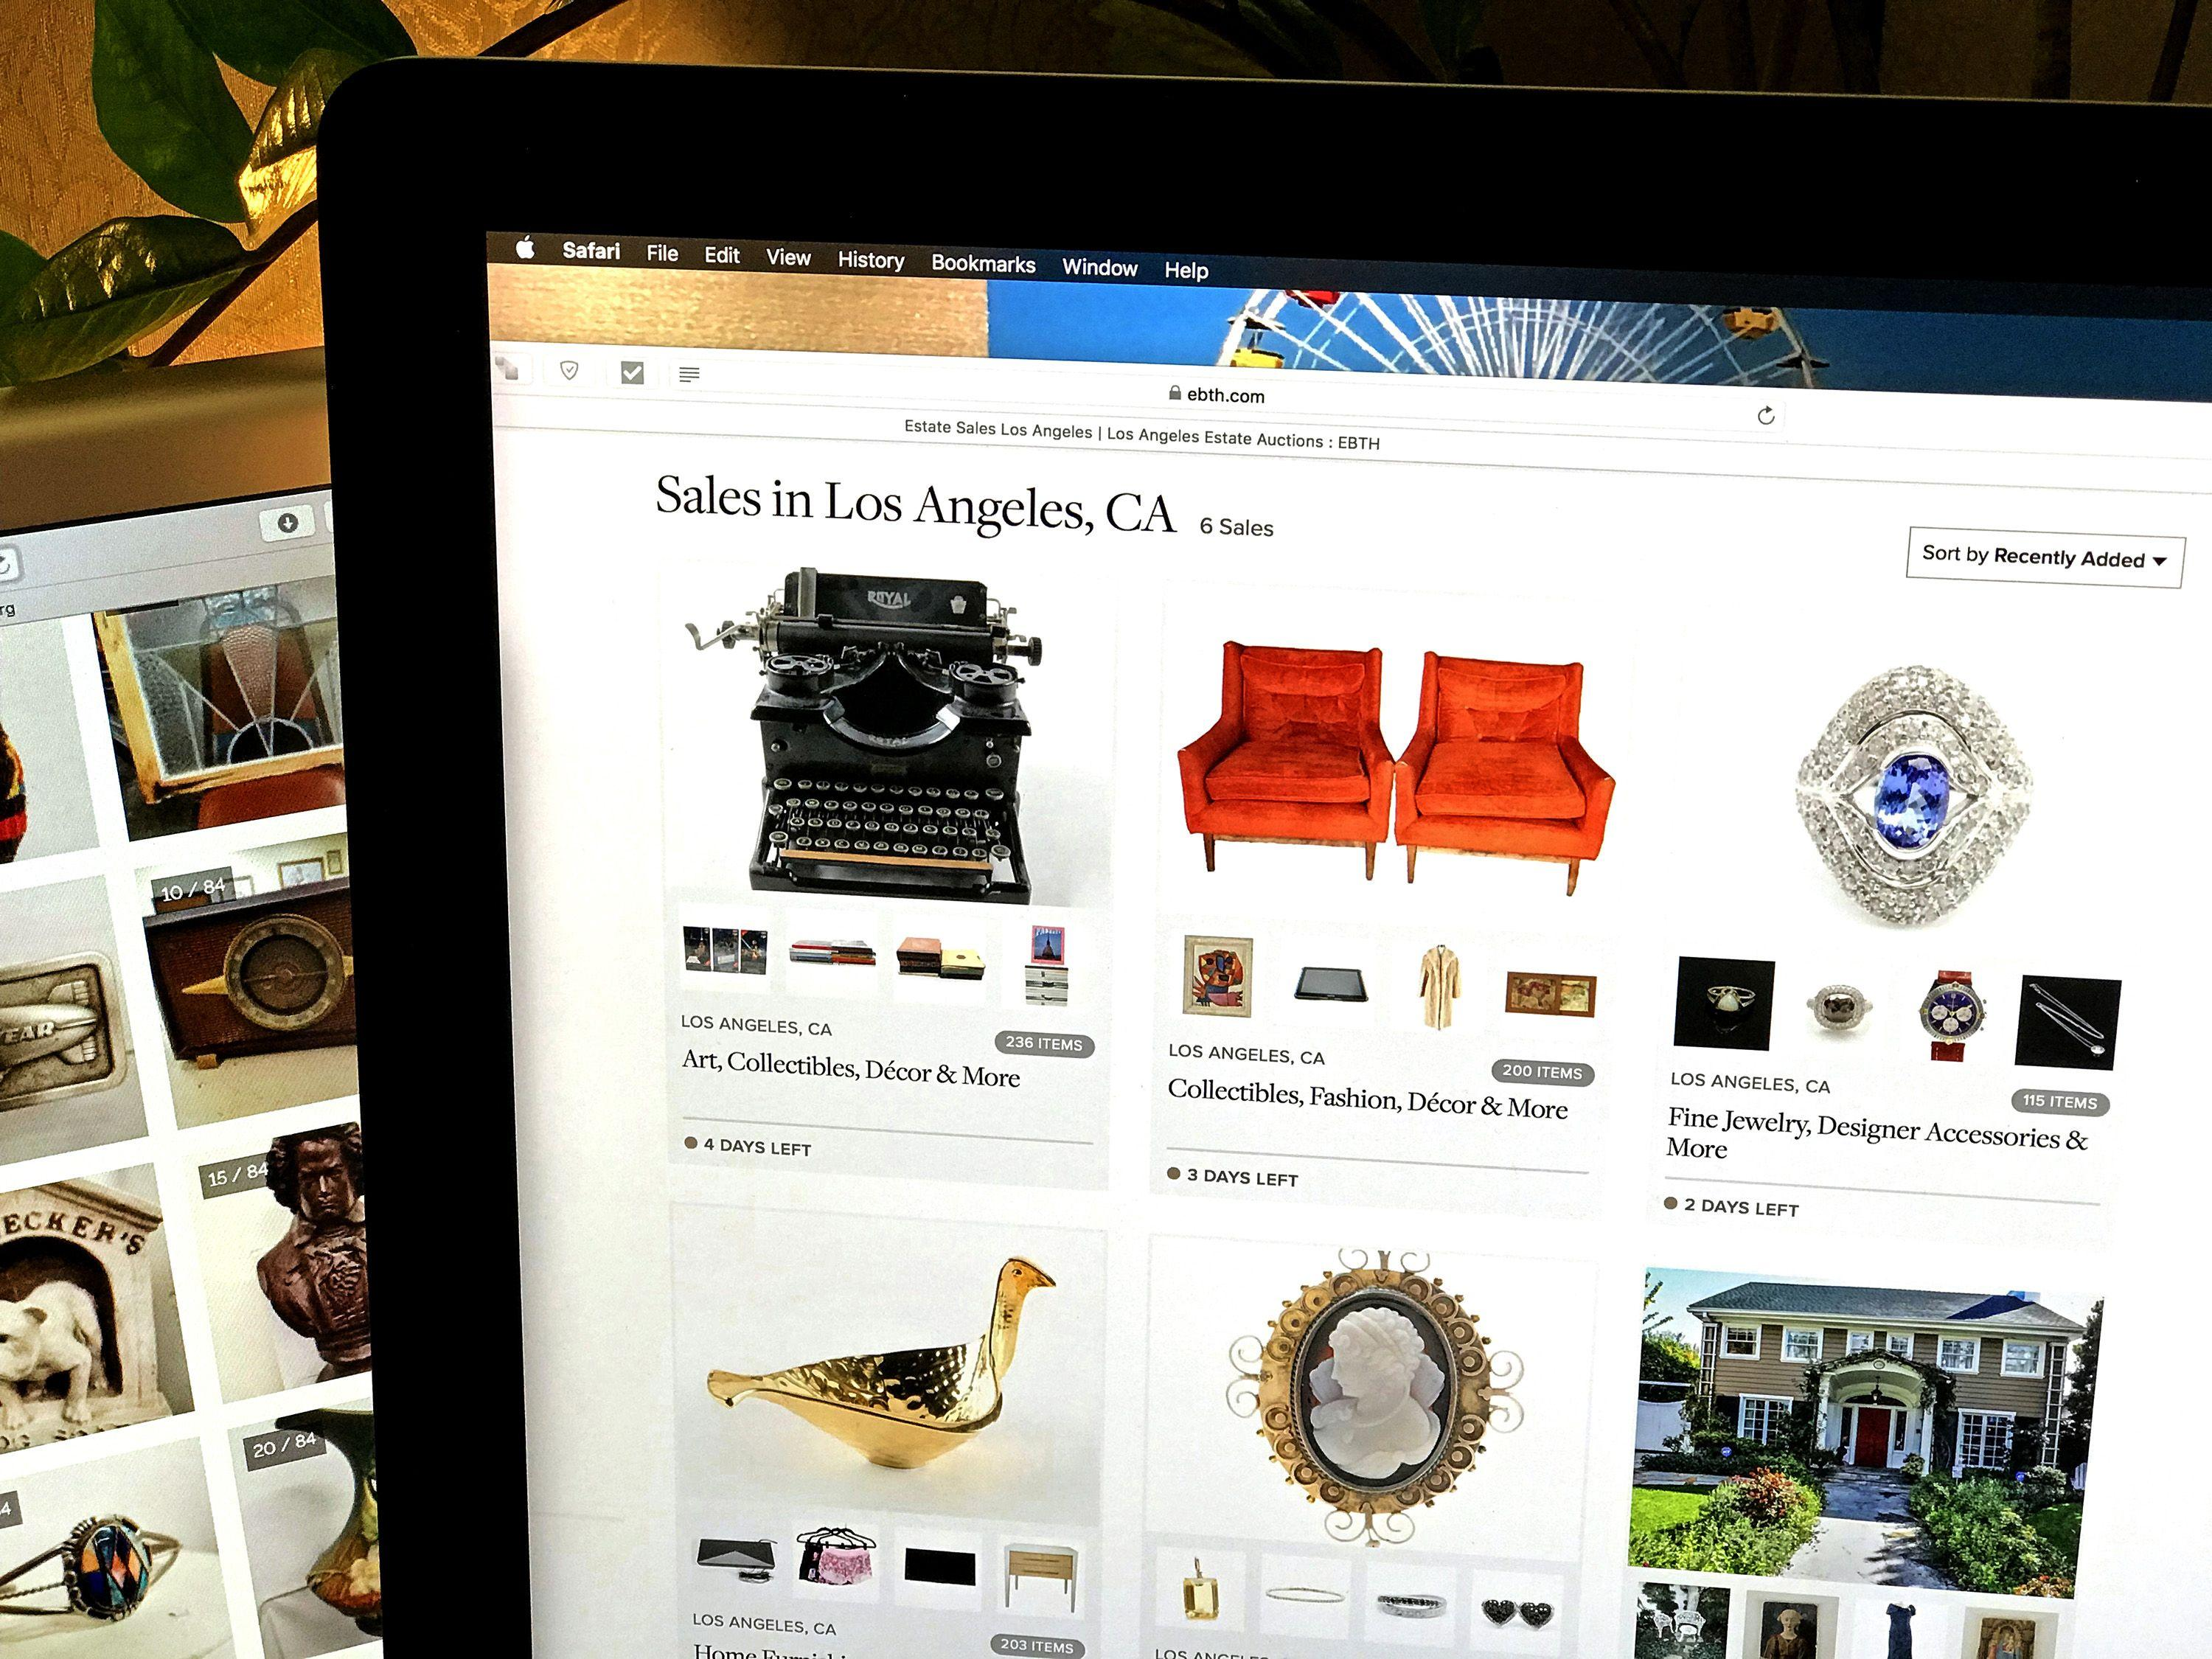 Online Estate Sale Company Everything But The House, As Seen On An IMac. (